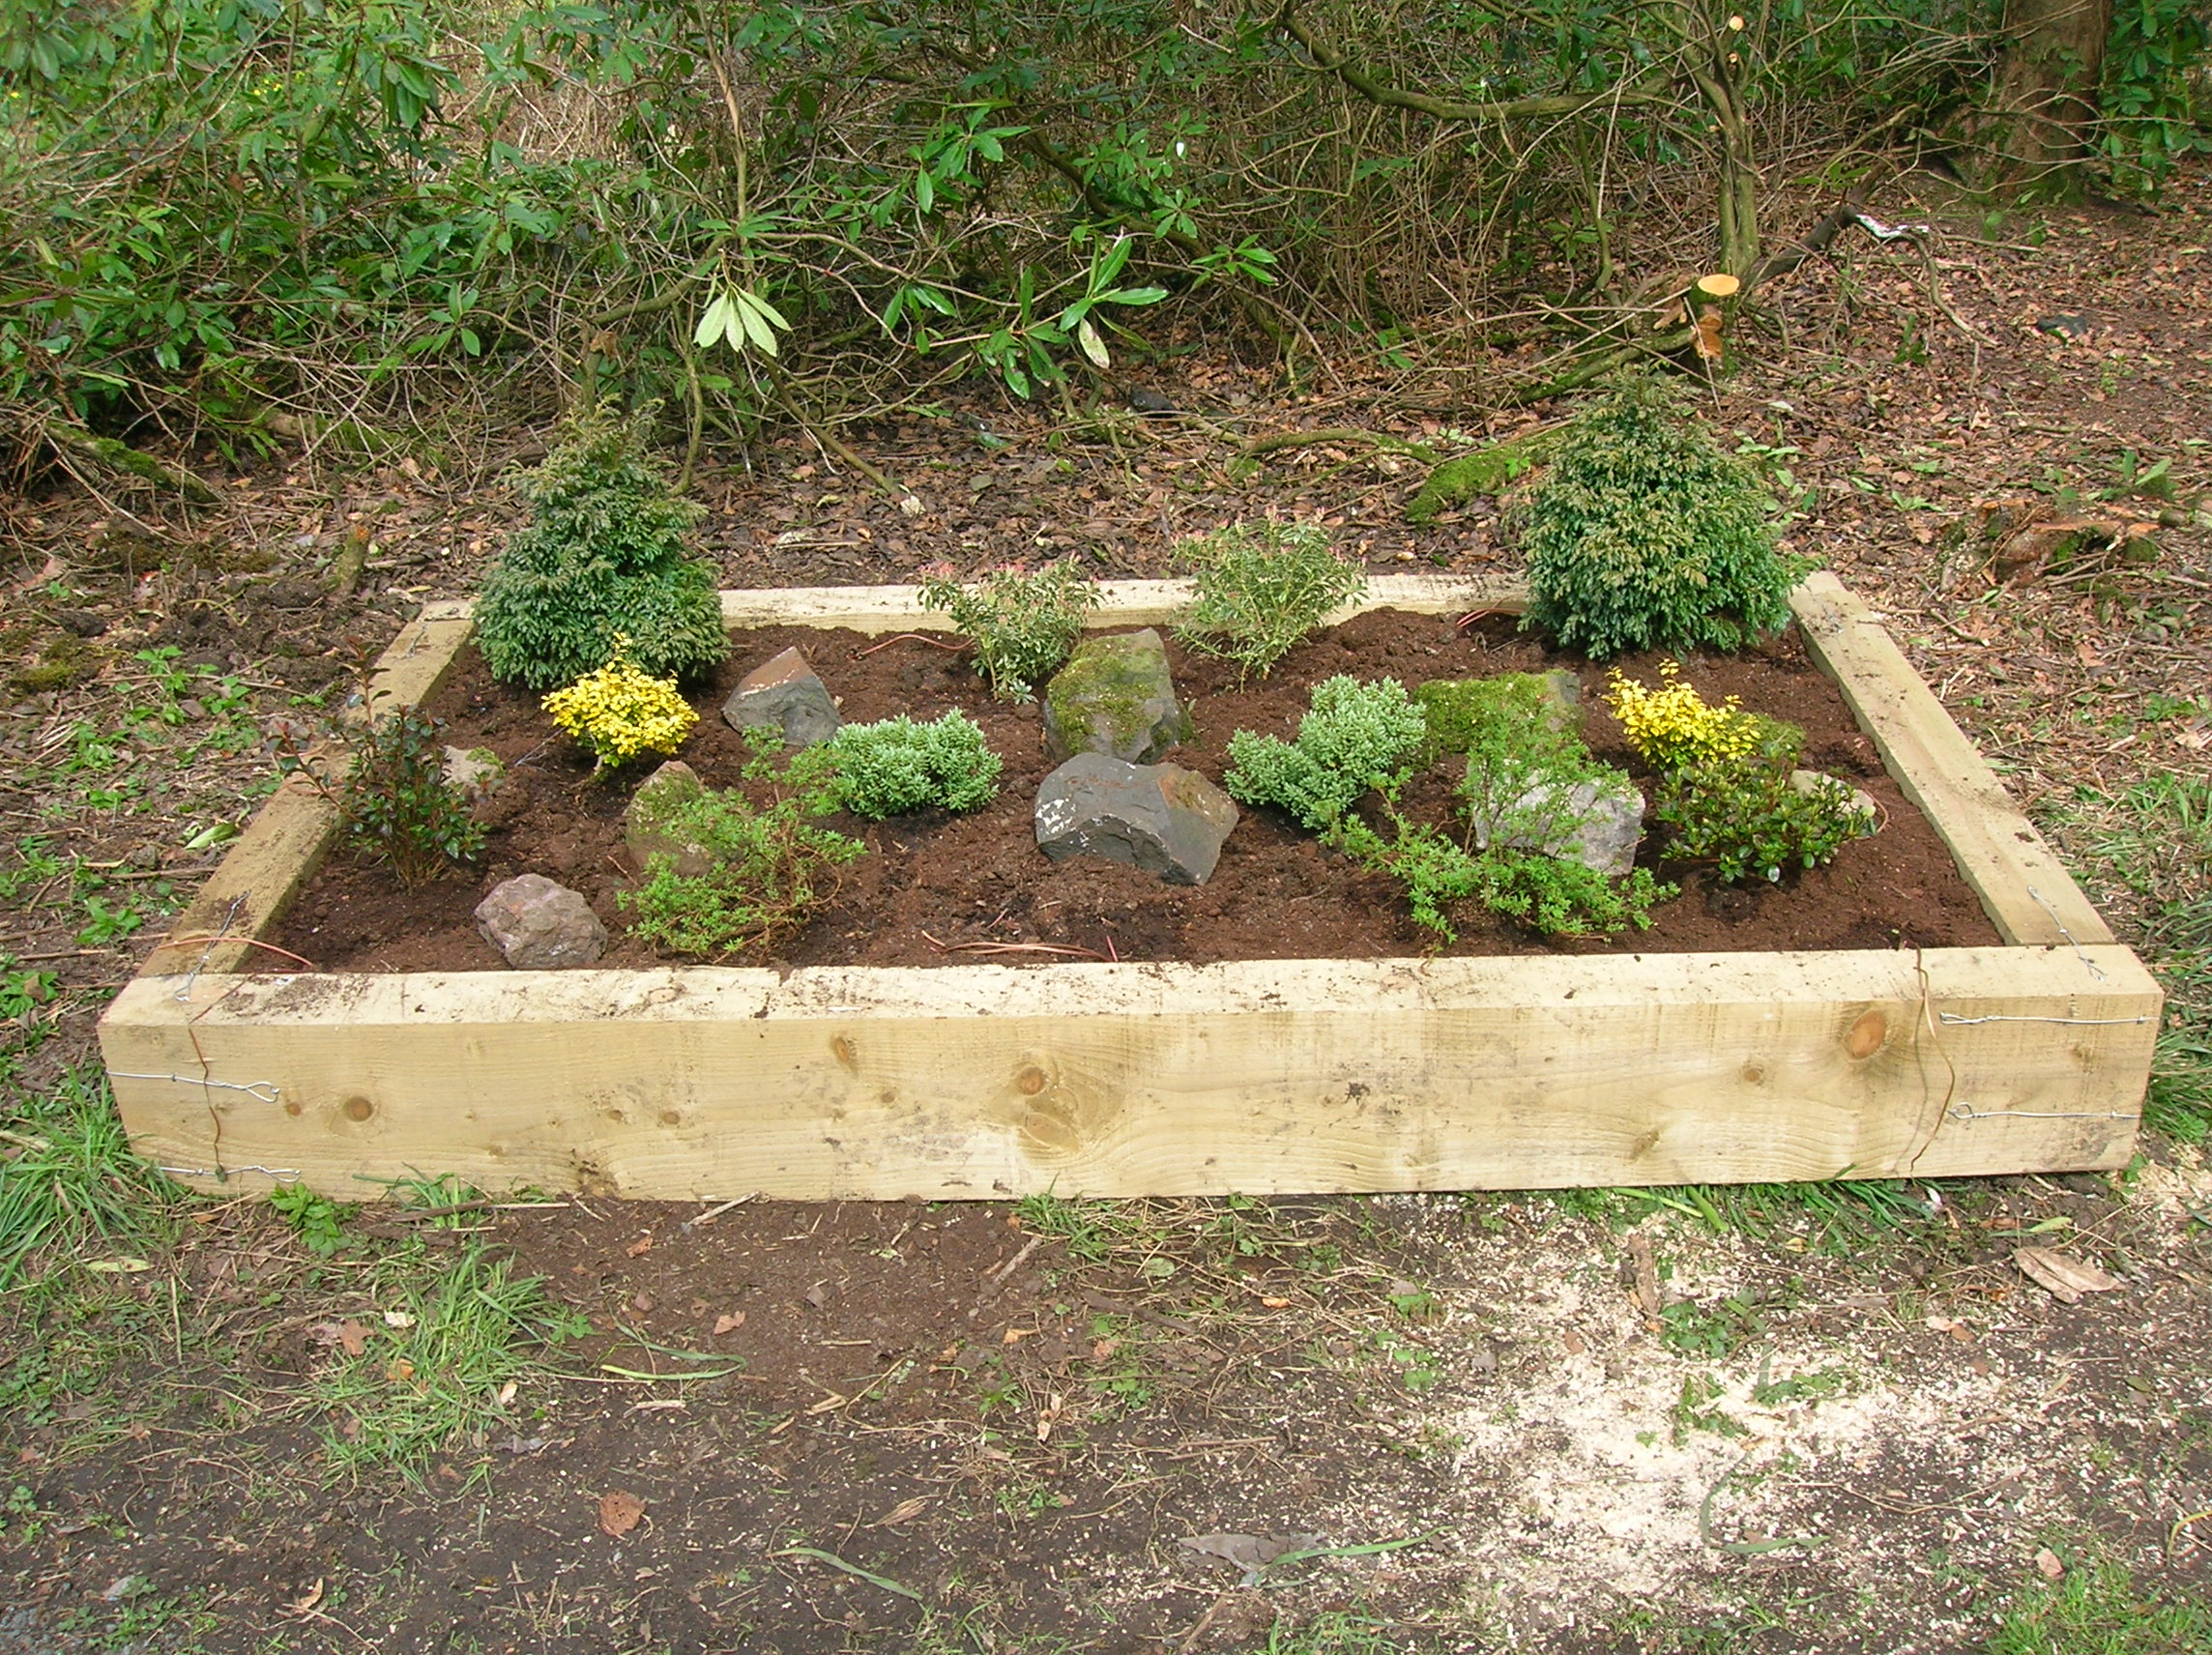 File:Raised Flower Bed At Spieru0027s.